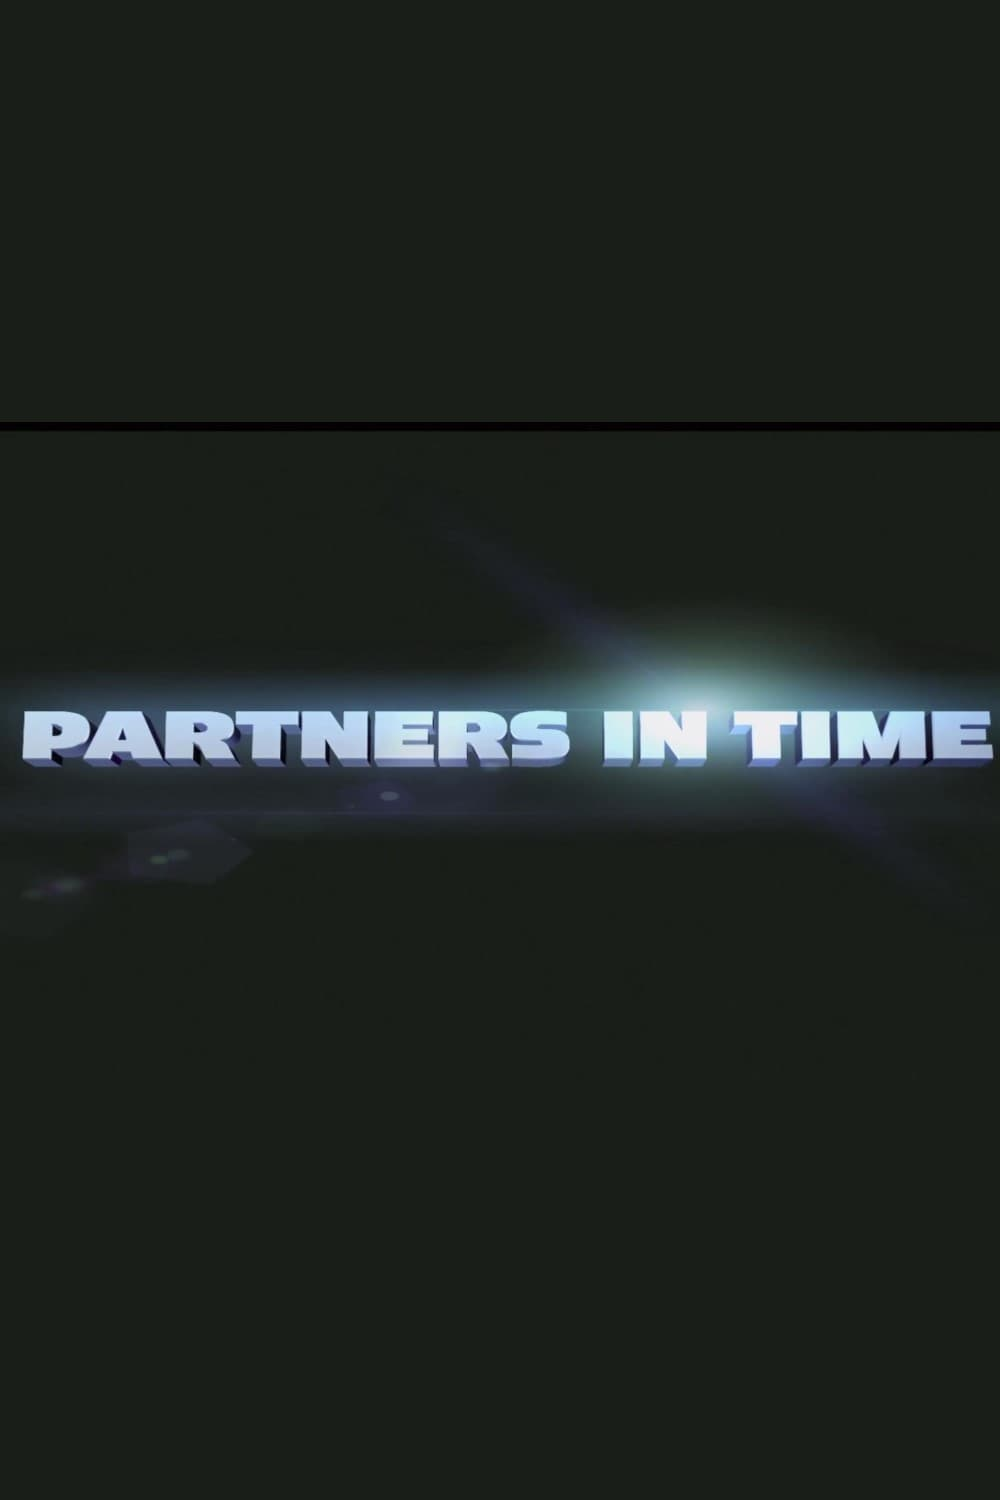 Partners in Time: The Making of MIB 3 (2012)